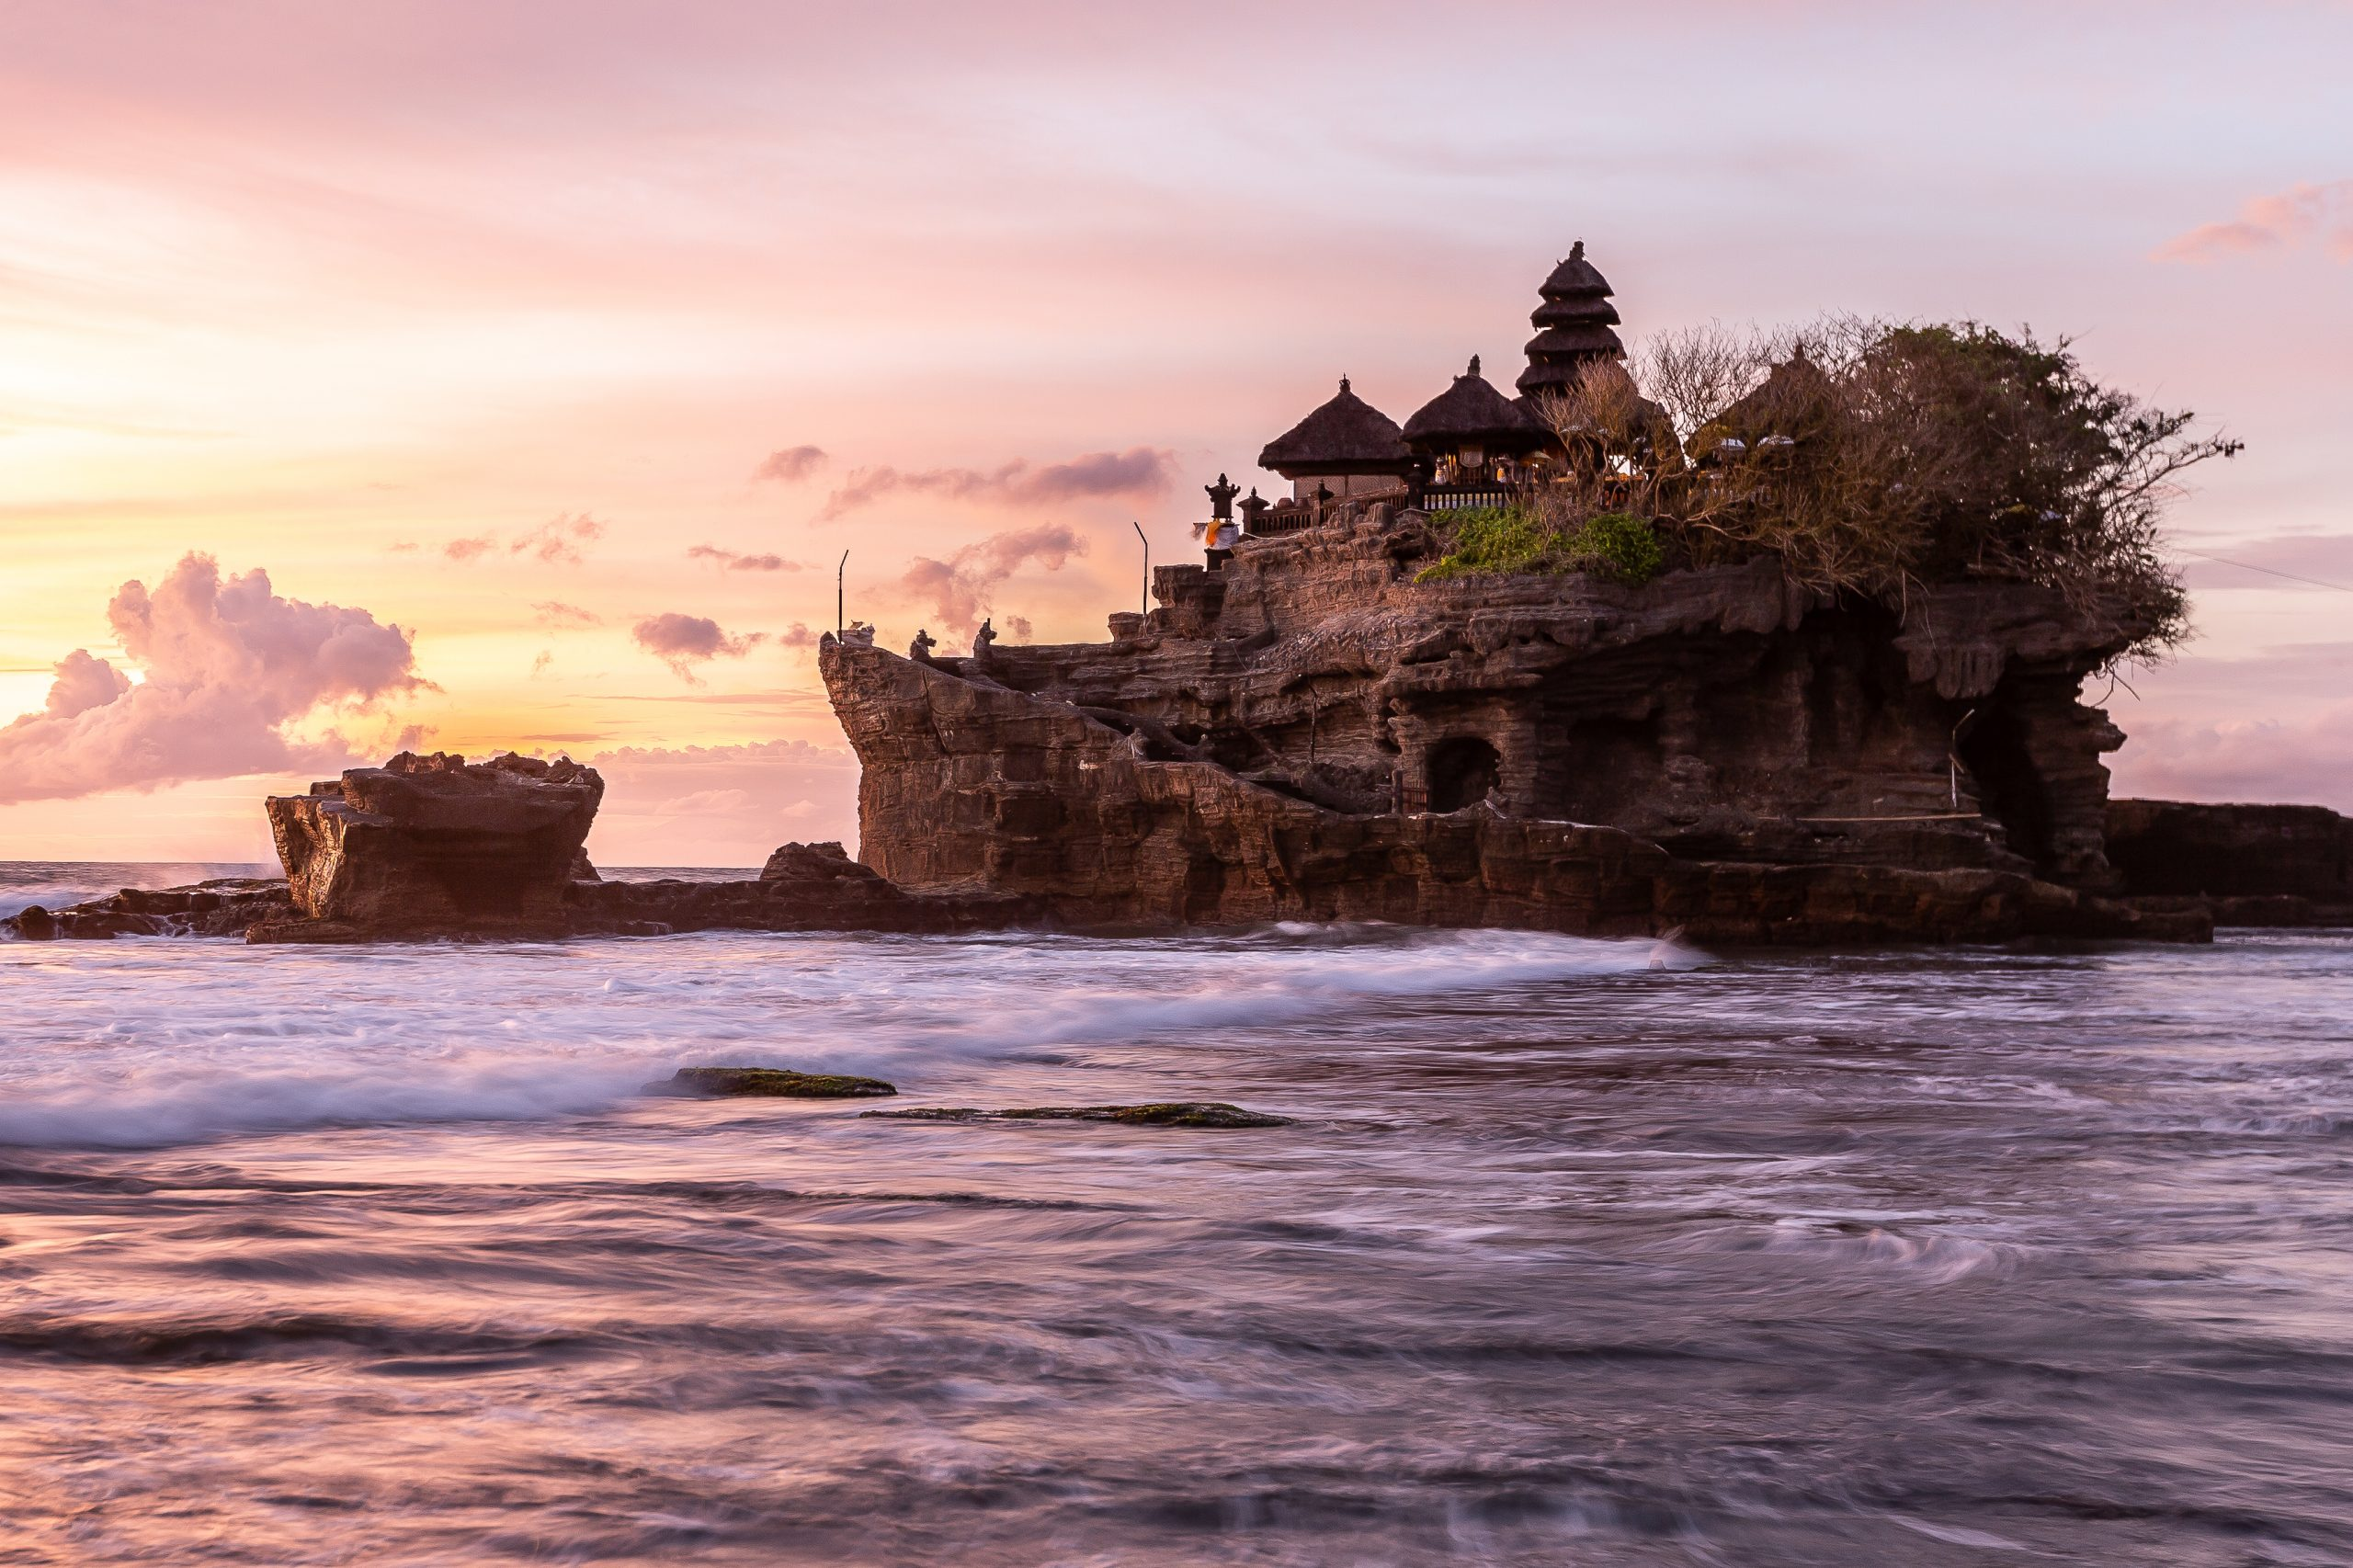 Tanah lot at sunset in Indonesia